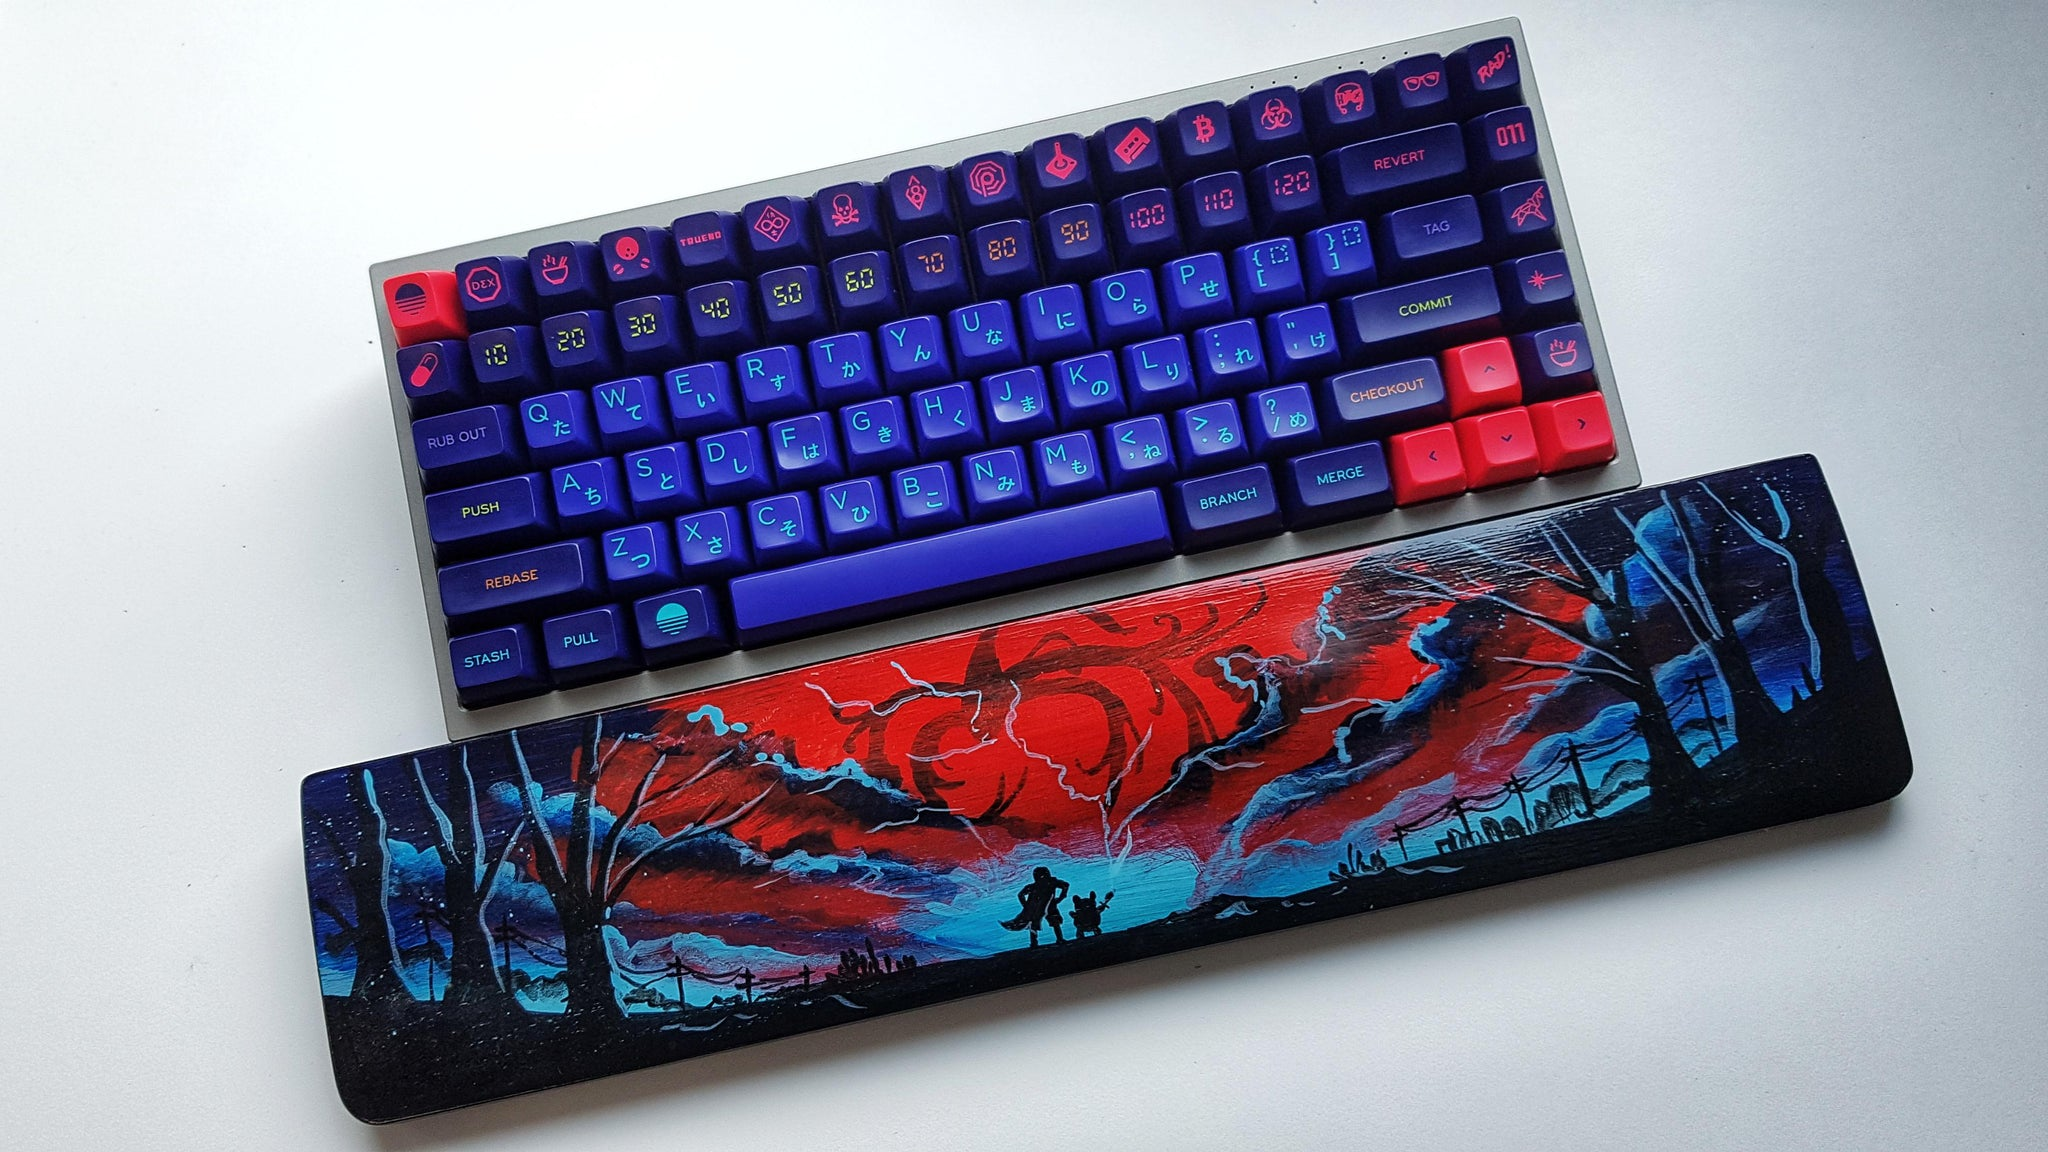 SA laser and Brave wristrest